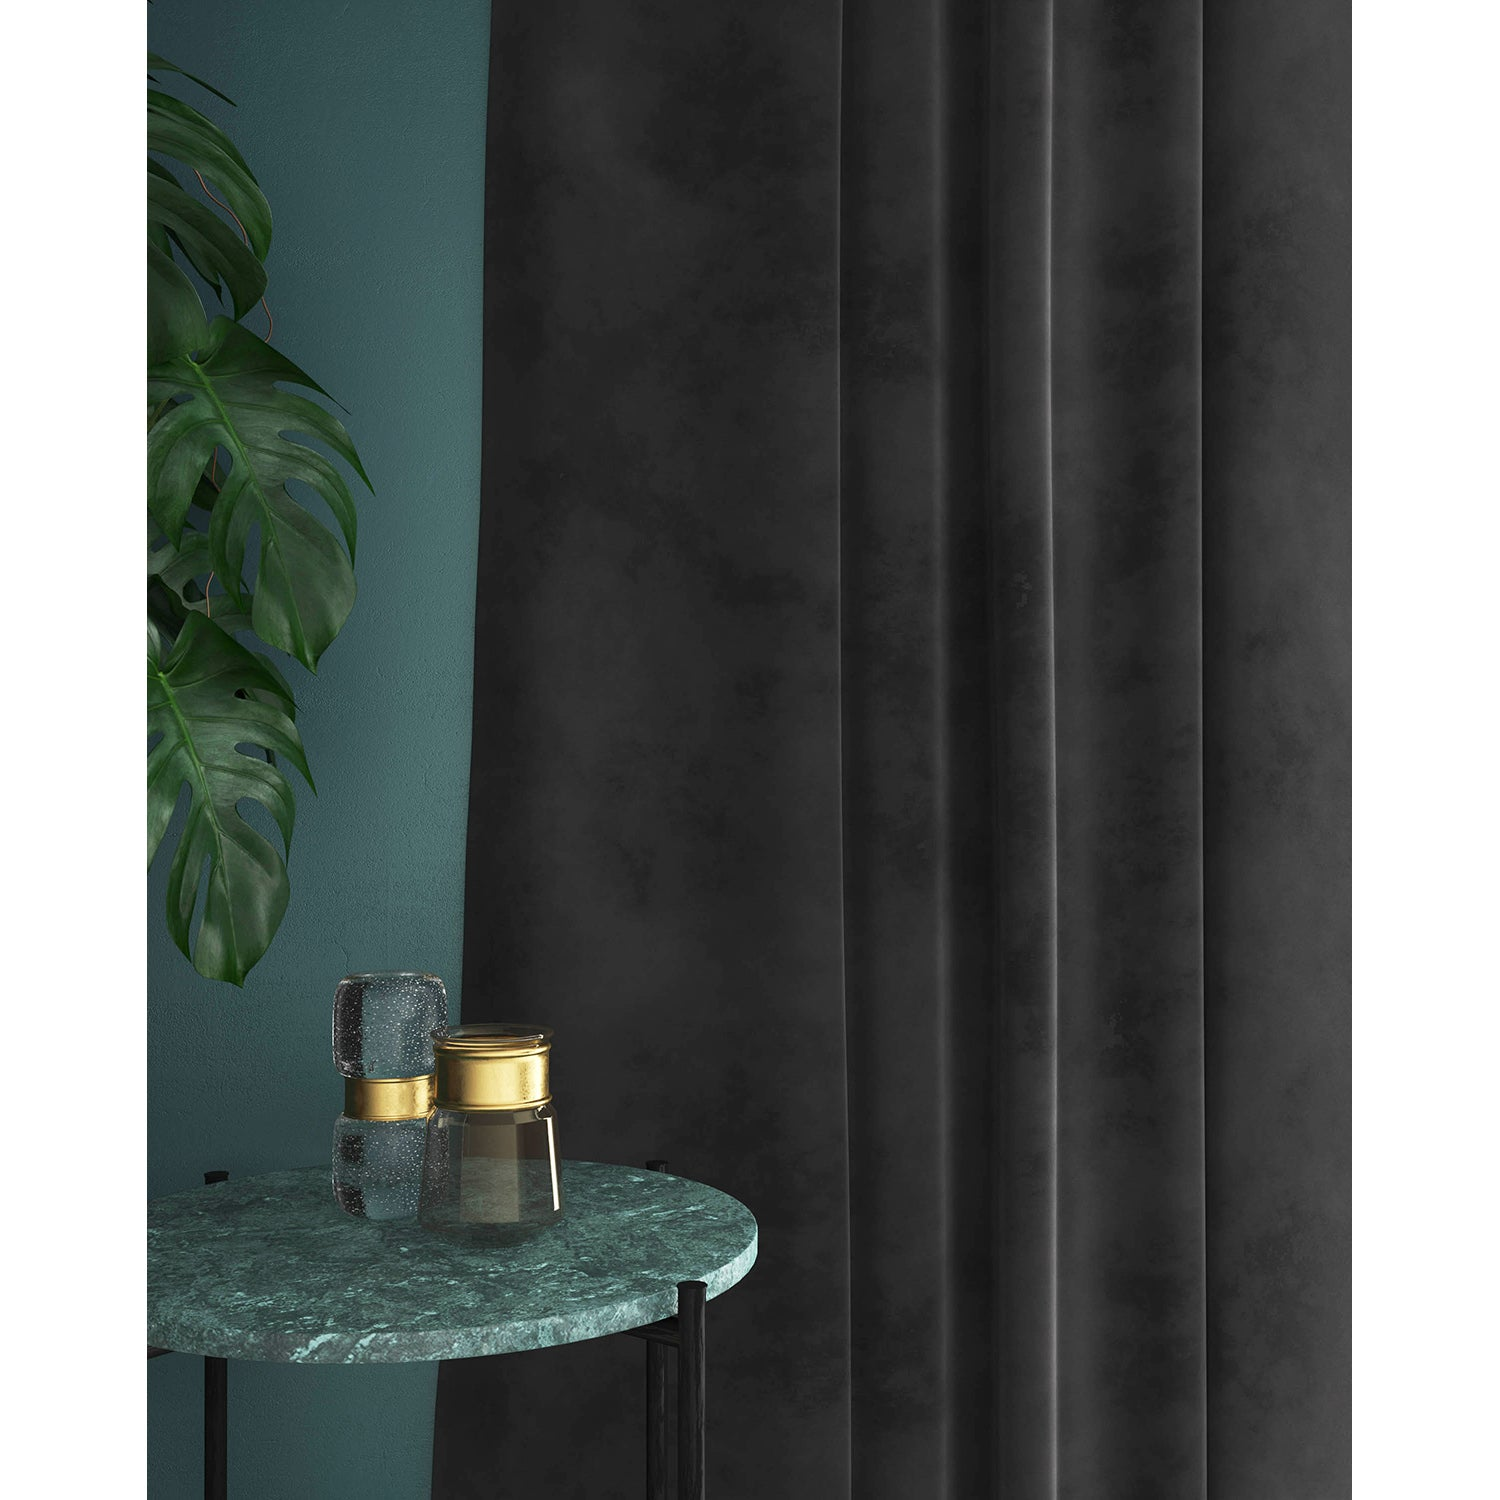 Curtain in a dark grey velvet fabric with a stain resistant finish